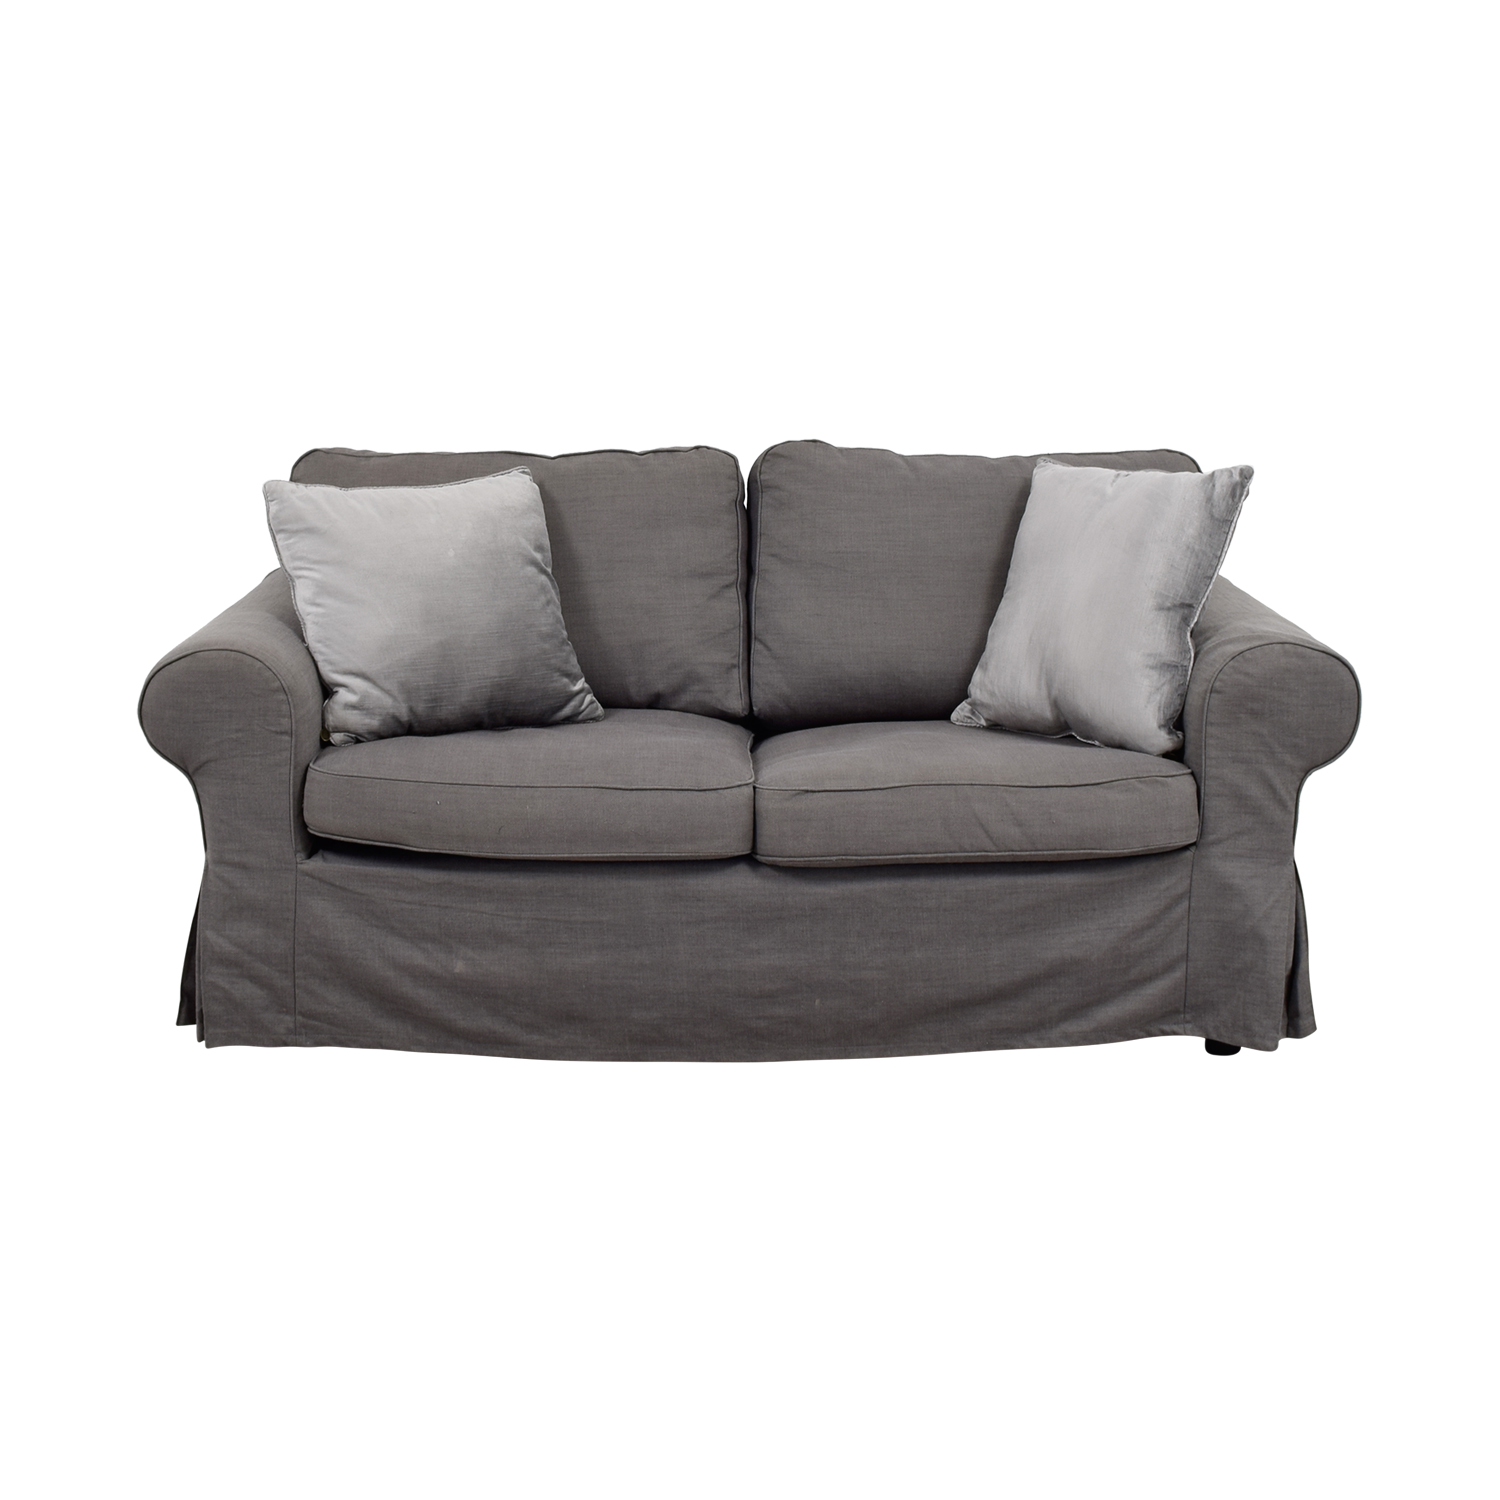 off  grey linen twocushion couch  sofas - grey linen twocushion couch gray